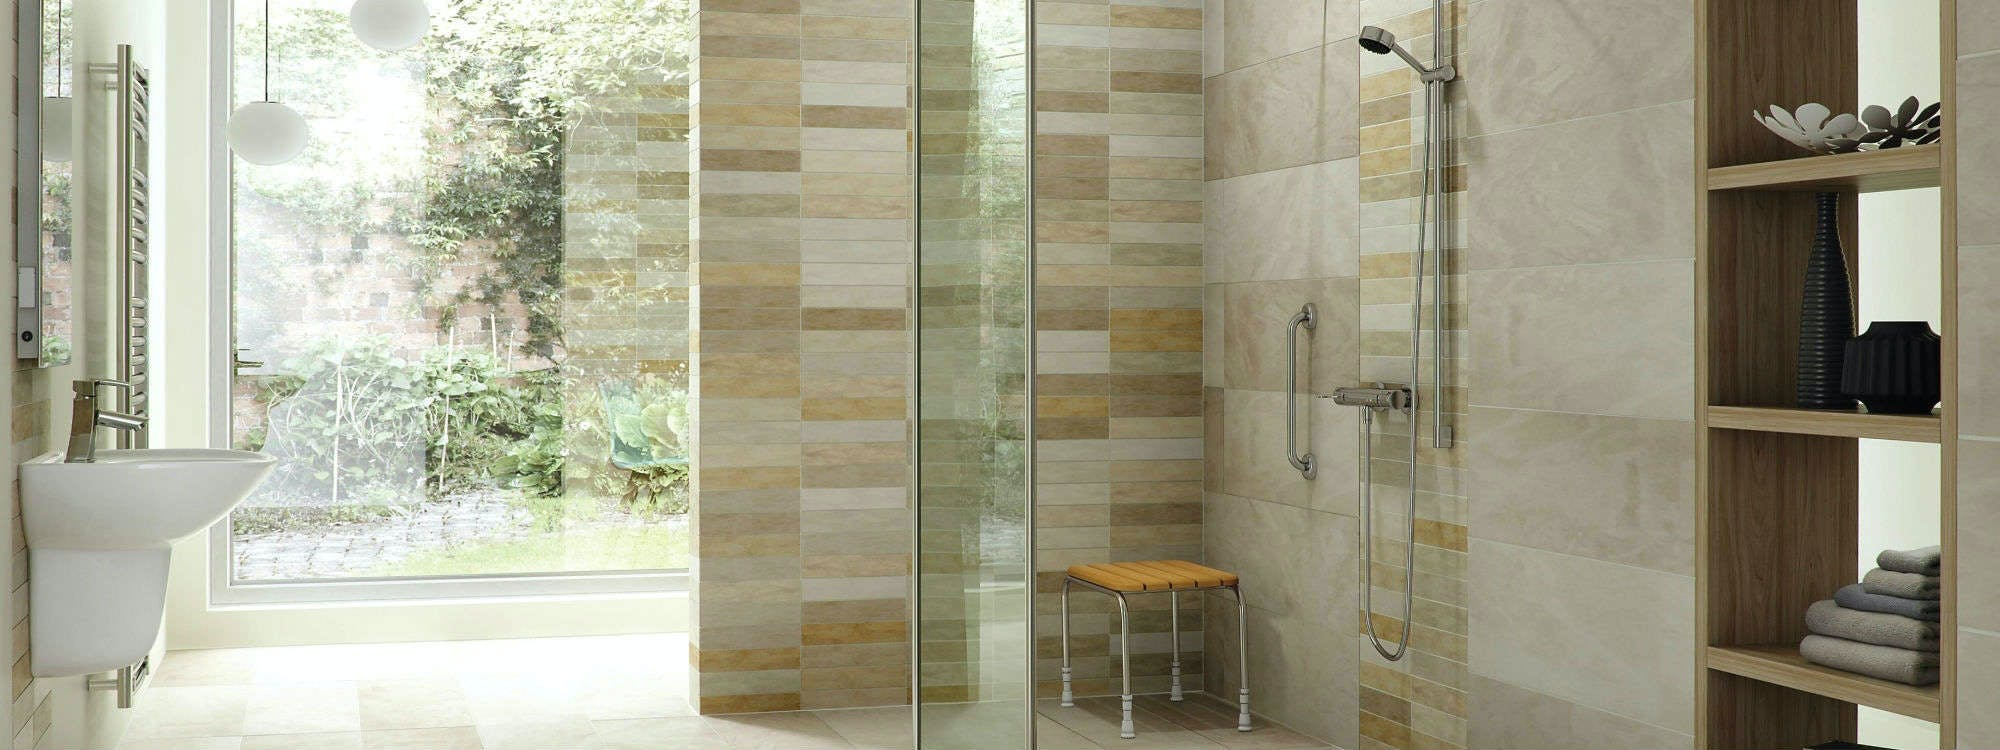 Specialising in stylish and accessible, future-proofed, solutions we can create you an easy access shower room that is functional and safe, providing you with a haven to wash in comfort and with independence.